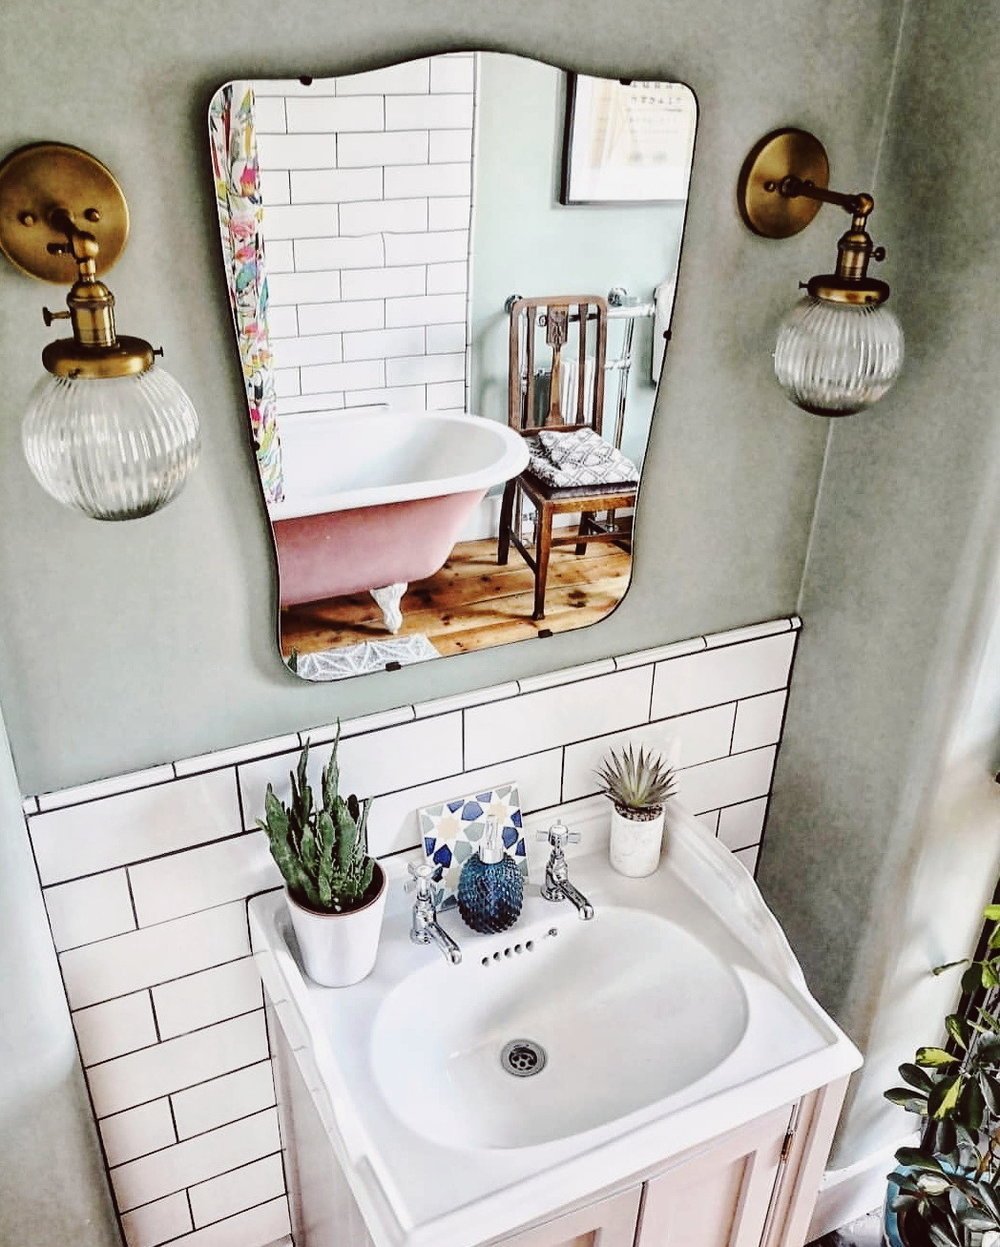 Pink freestanding rolltop bath reflected in a vintage mirror above a vanity unit